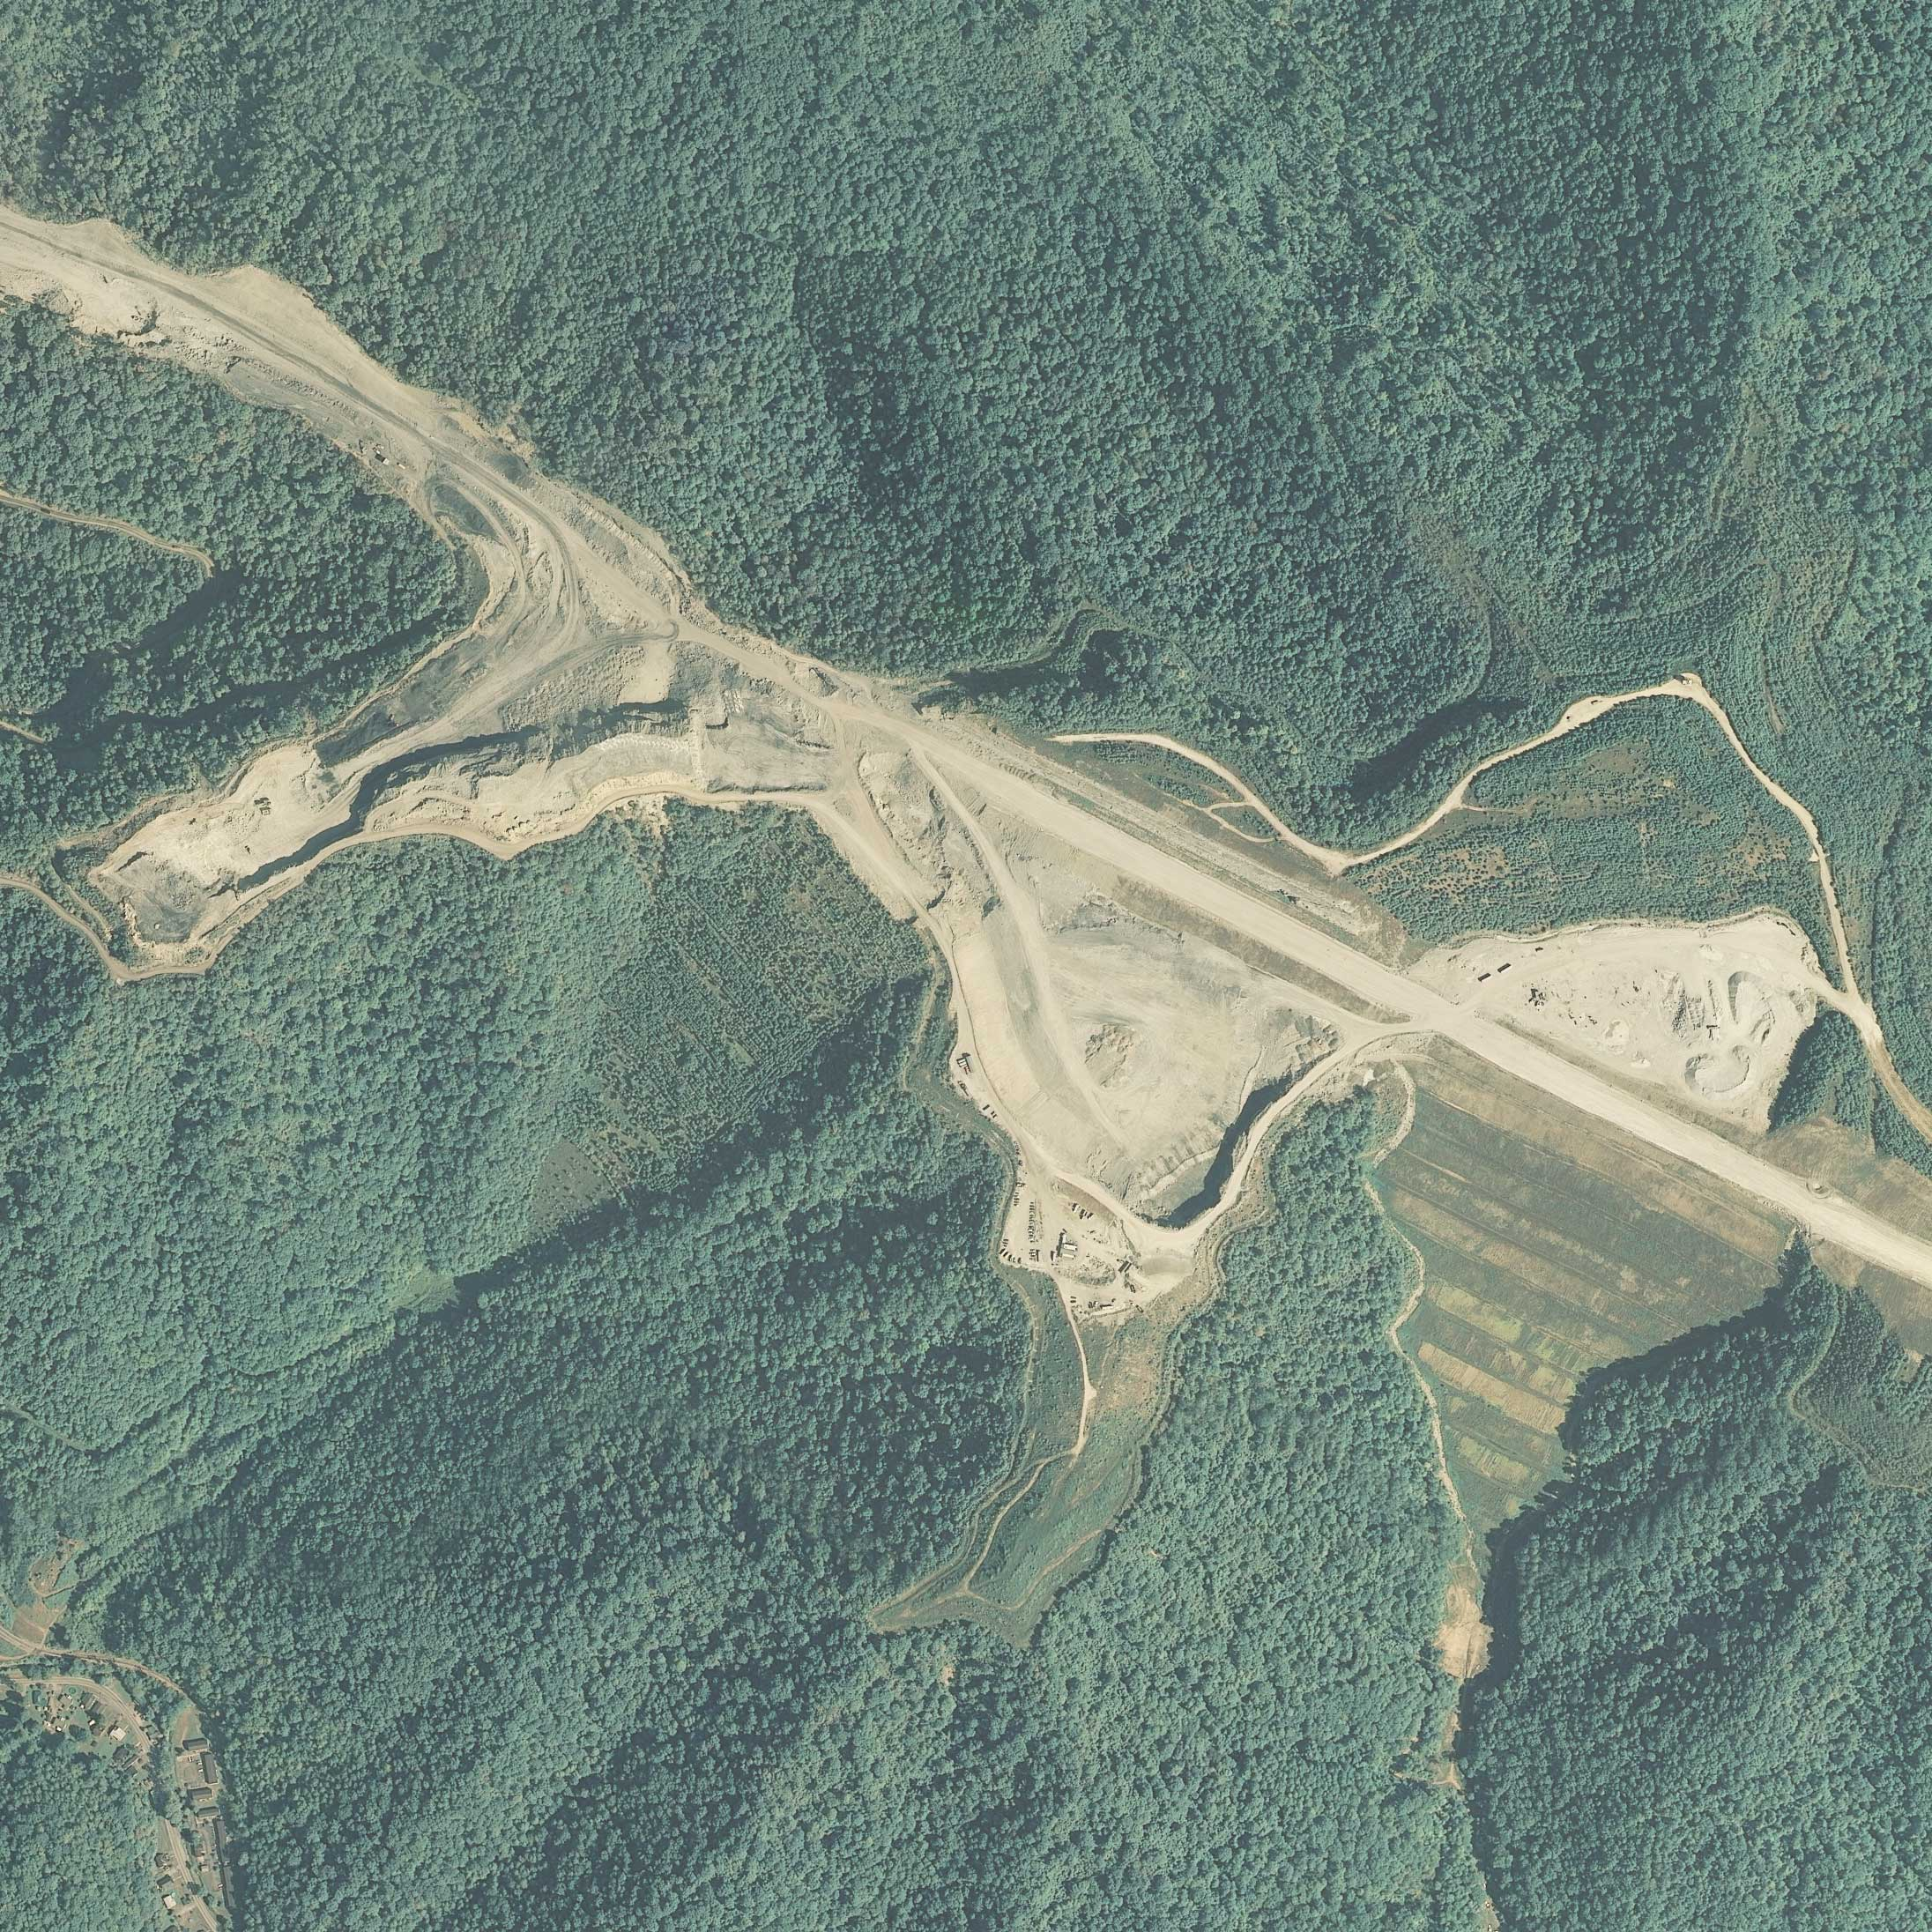 Image of the mined area in 2007